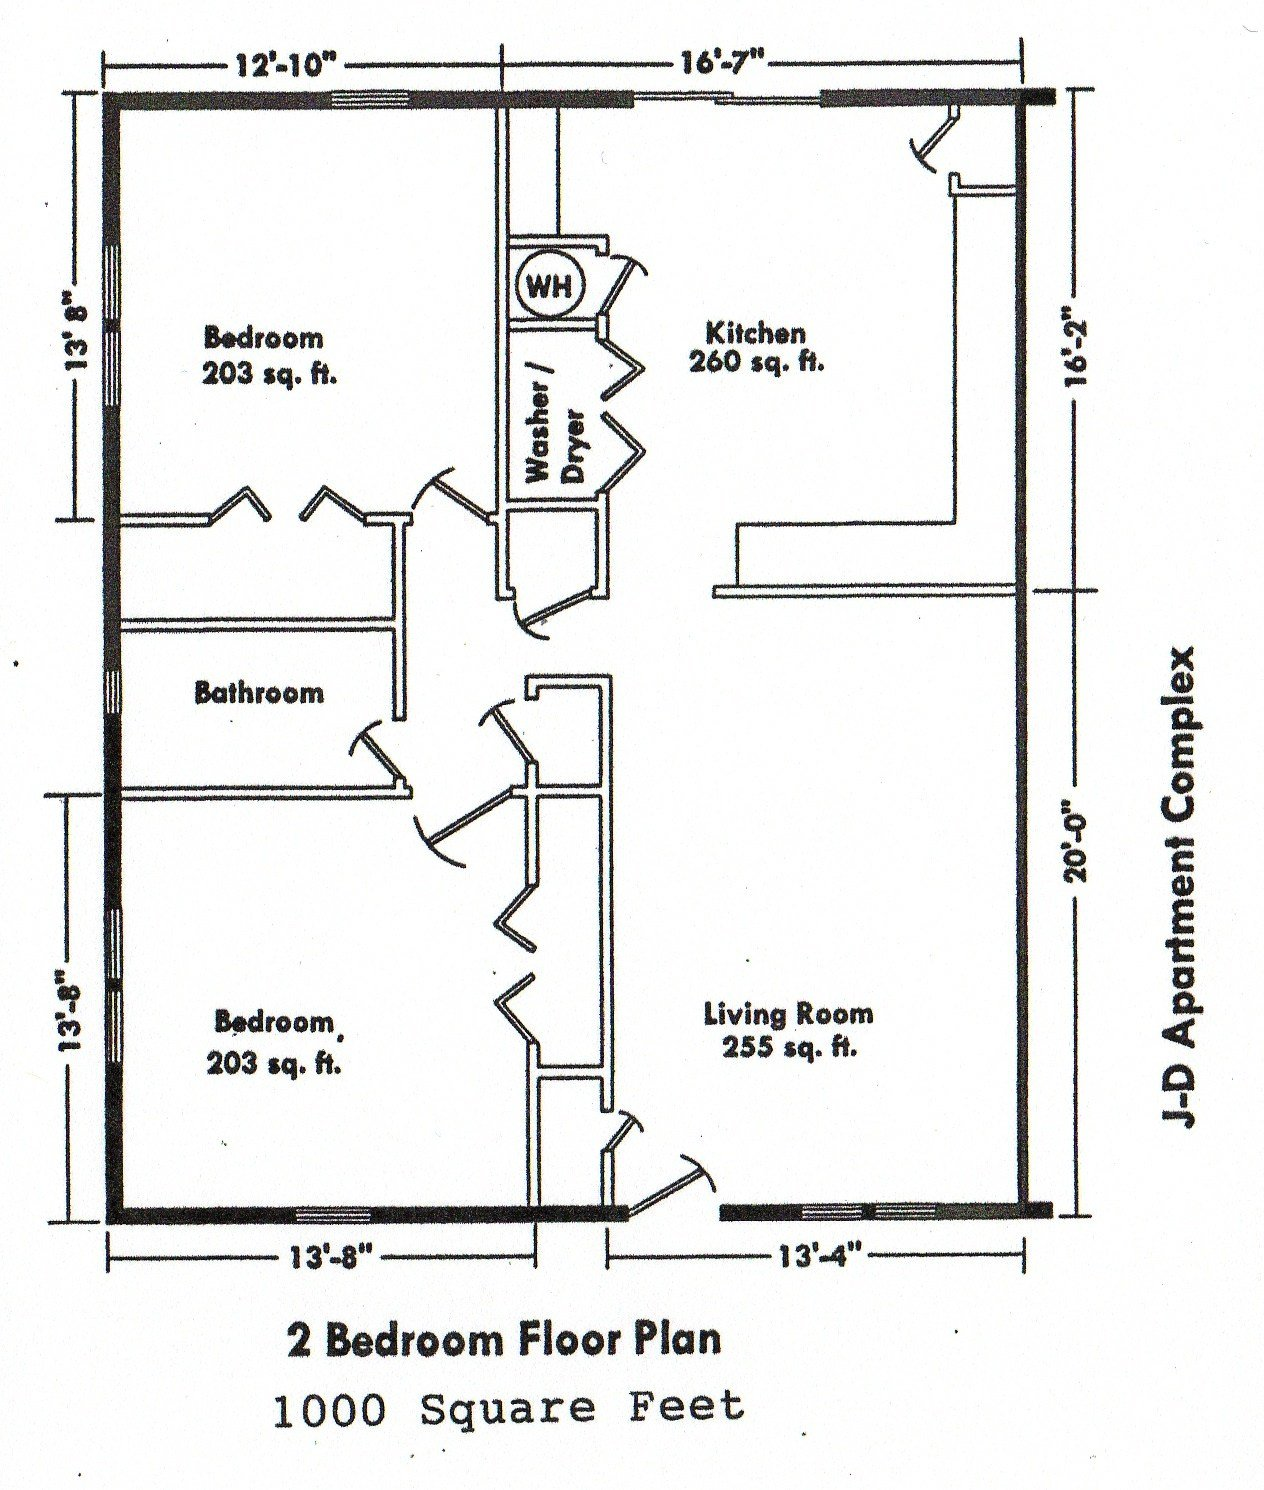 Best Bedroom Floor Plans Over 5000 House Plans With Pictures